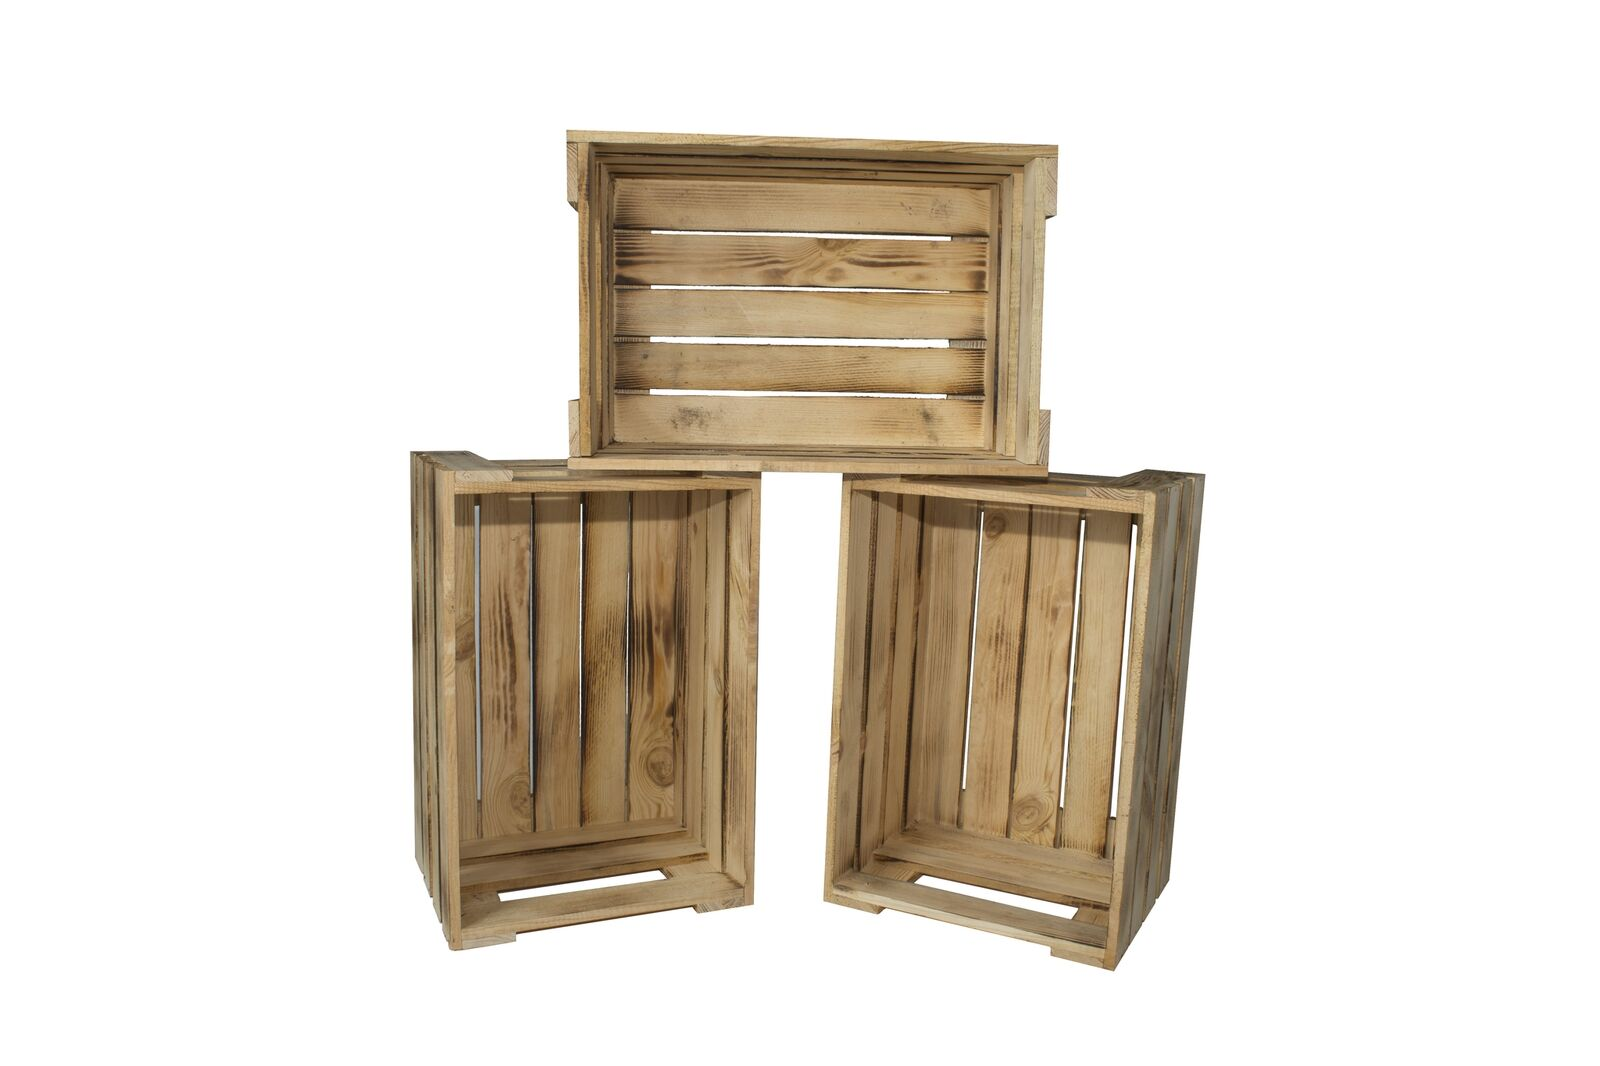 3er set weinkisten aus holz holzkiste obstkiste allzweckkiste rustikal 2 eur 13 60 picclick de. Black Bedroom Furniture Sets. Home Design Ideas